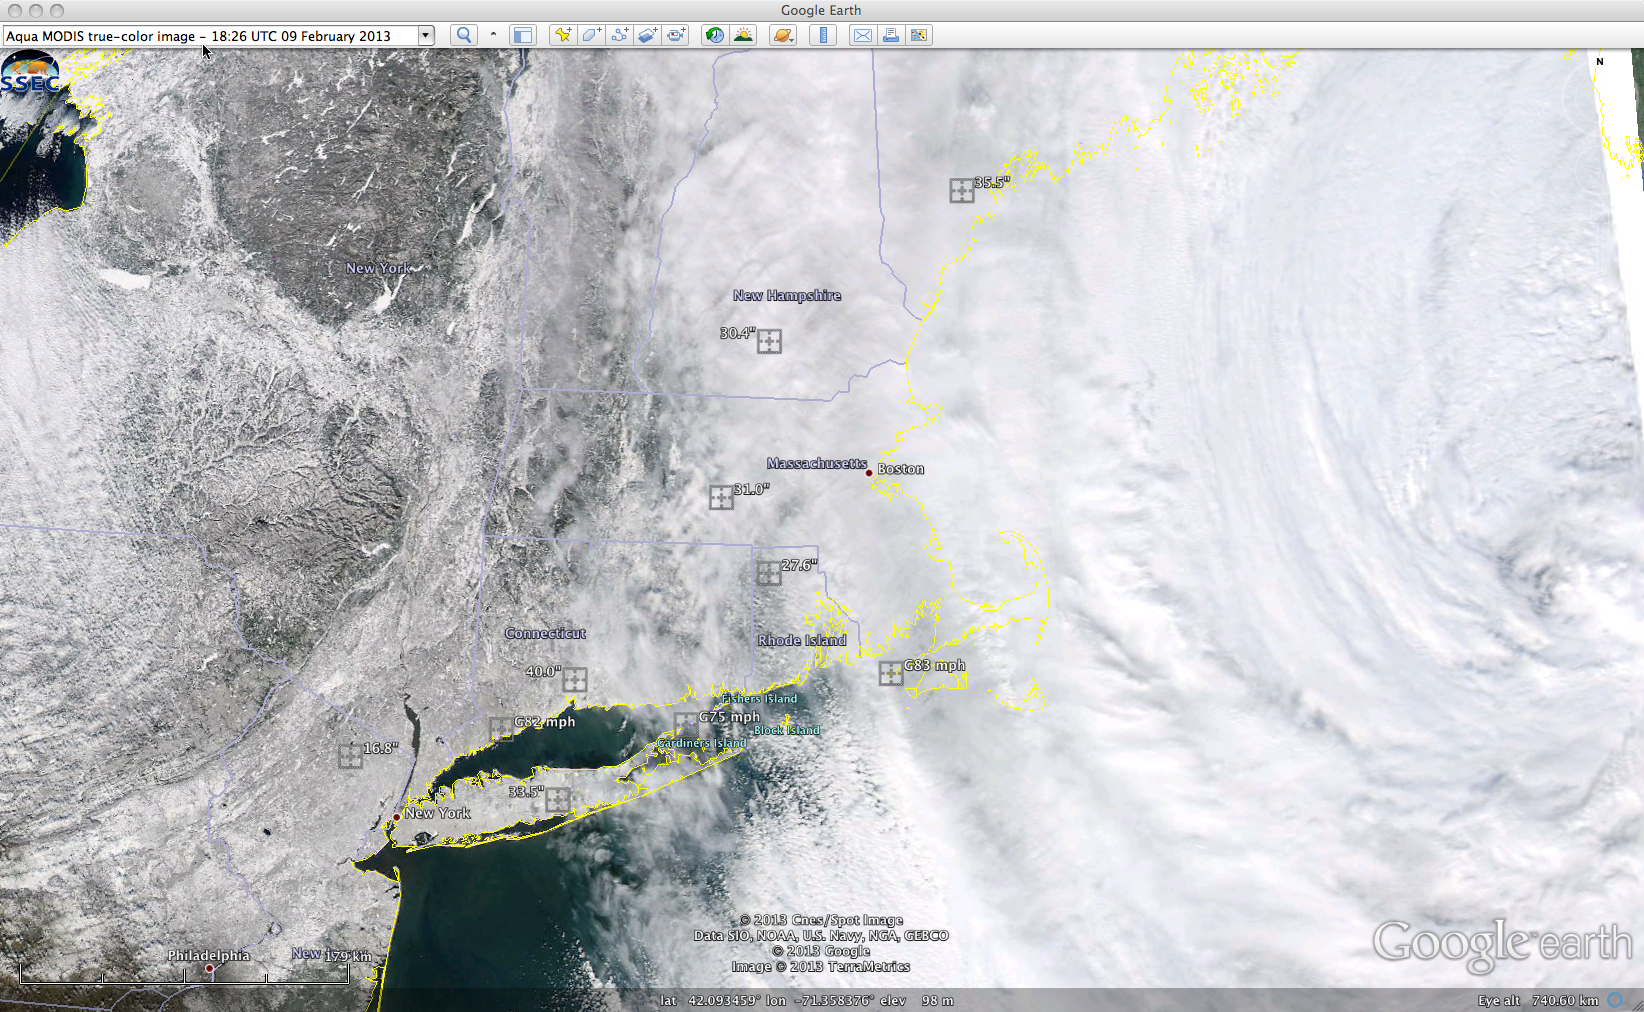 MODIS true-color Red/Green/Blue (RGB) image with maximum storm total snowfall amounts and peak wind gusts